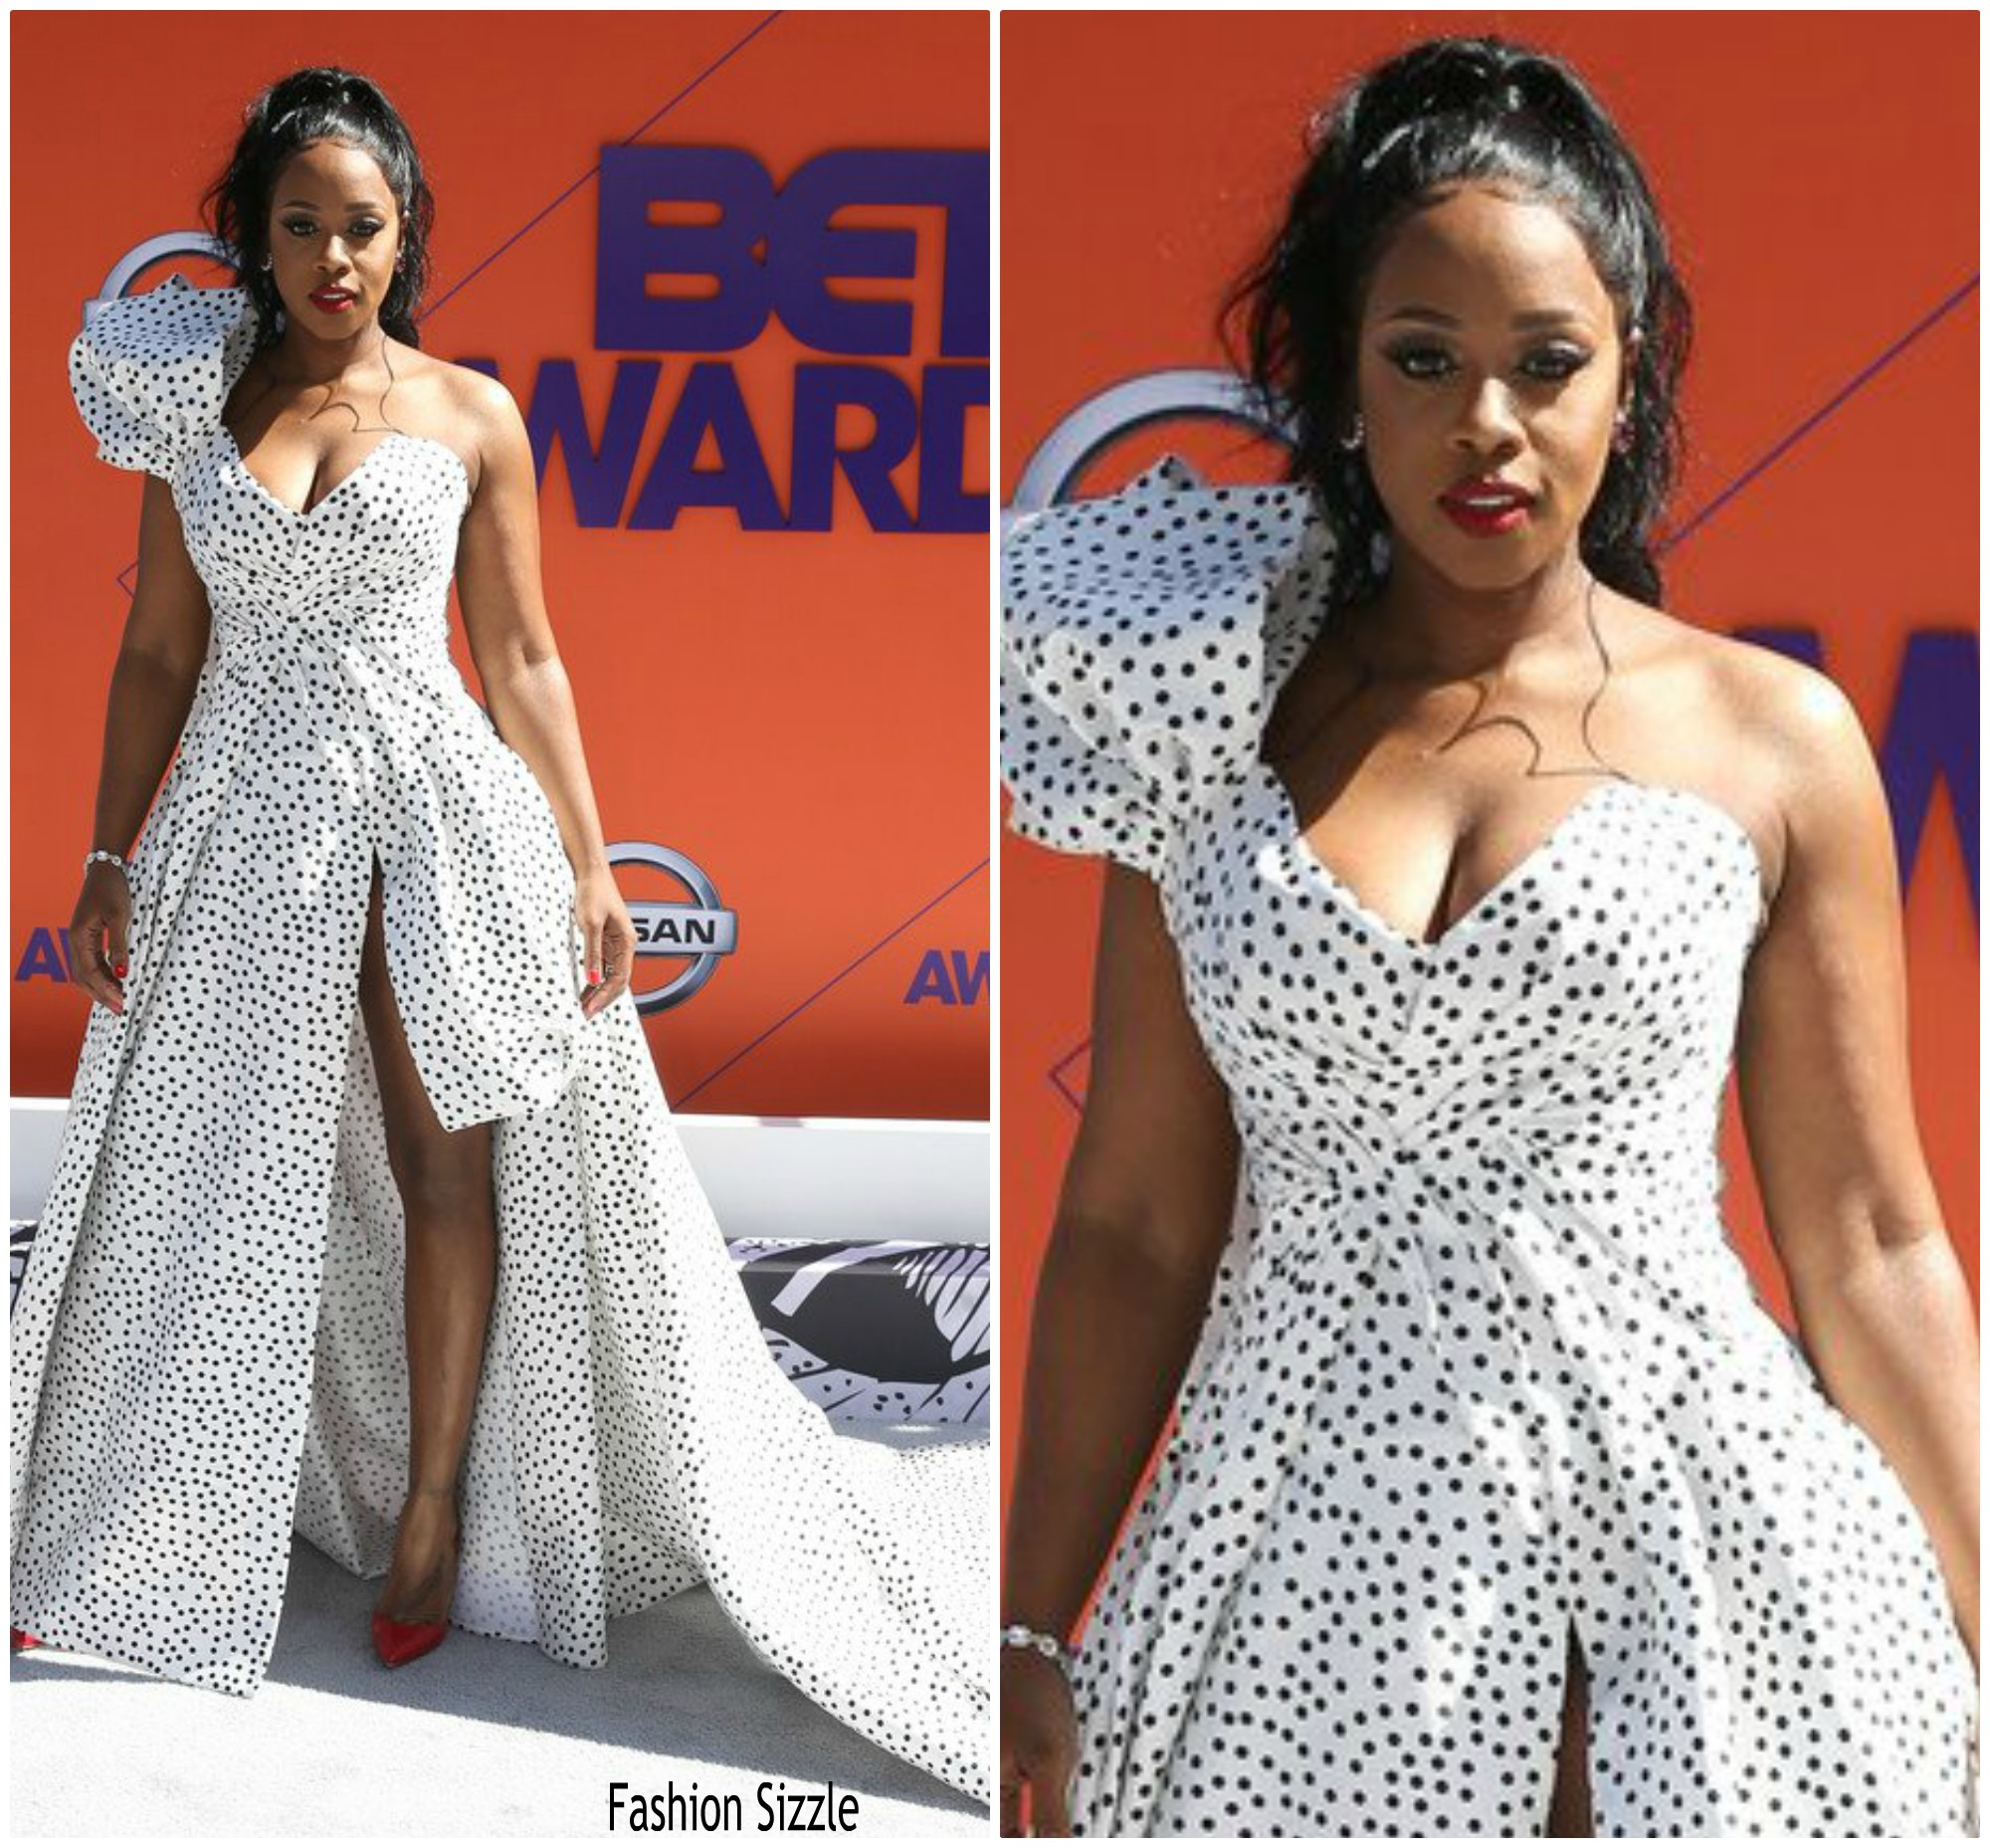 http://fashionbombdaily.com/the-hottest-looks-from-the-2018-bet-awards-remy-ma-in-karen-sabag-cassie-in-michael-sky-amber-rose-in-bryan-hearns-and-more/    https://www.eonline.com/photos/24843/bet-awards-2018-red-carpet-arrivals/854599